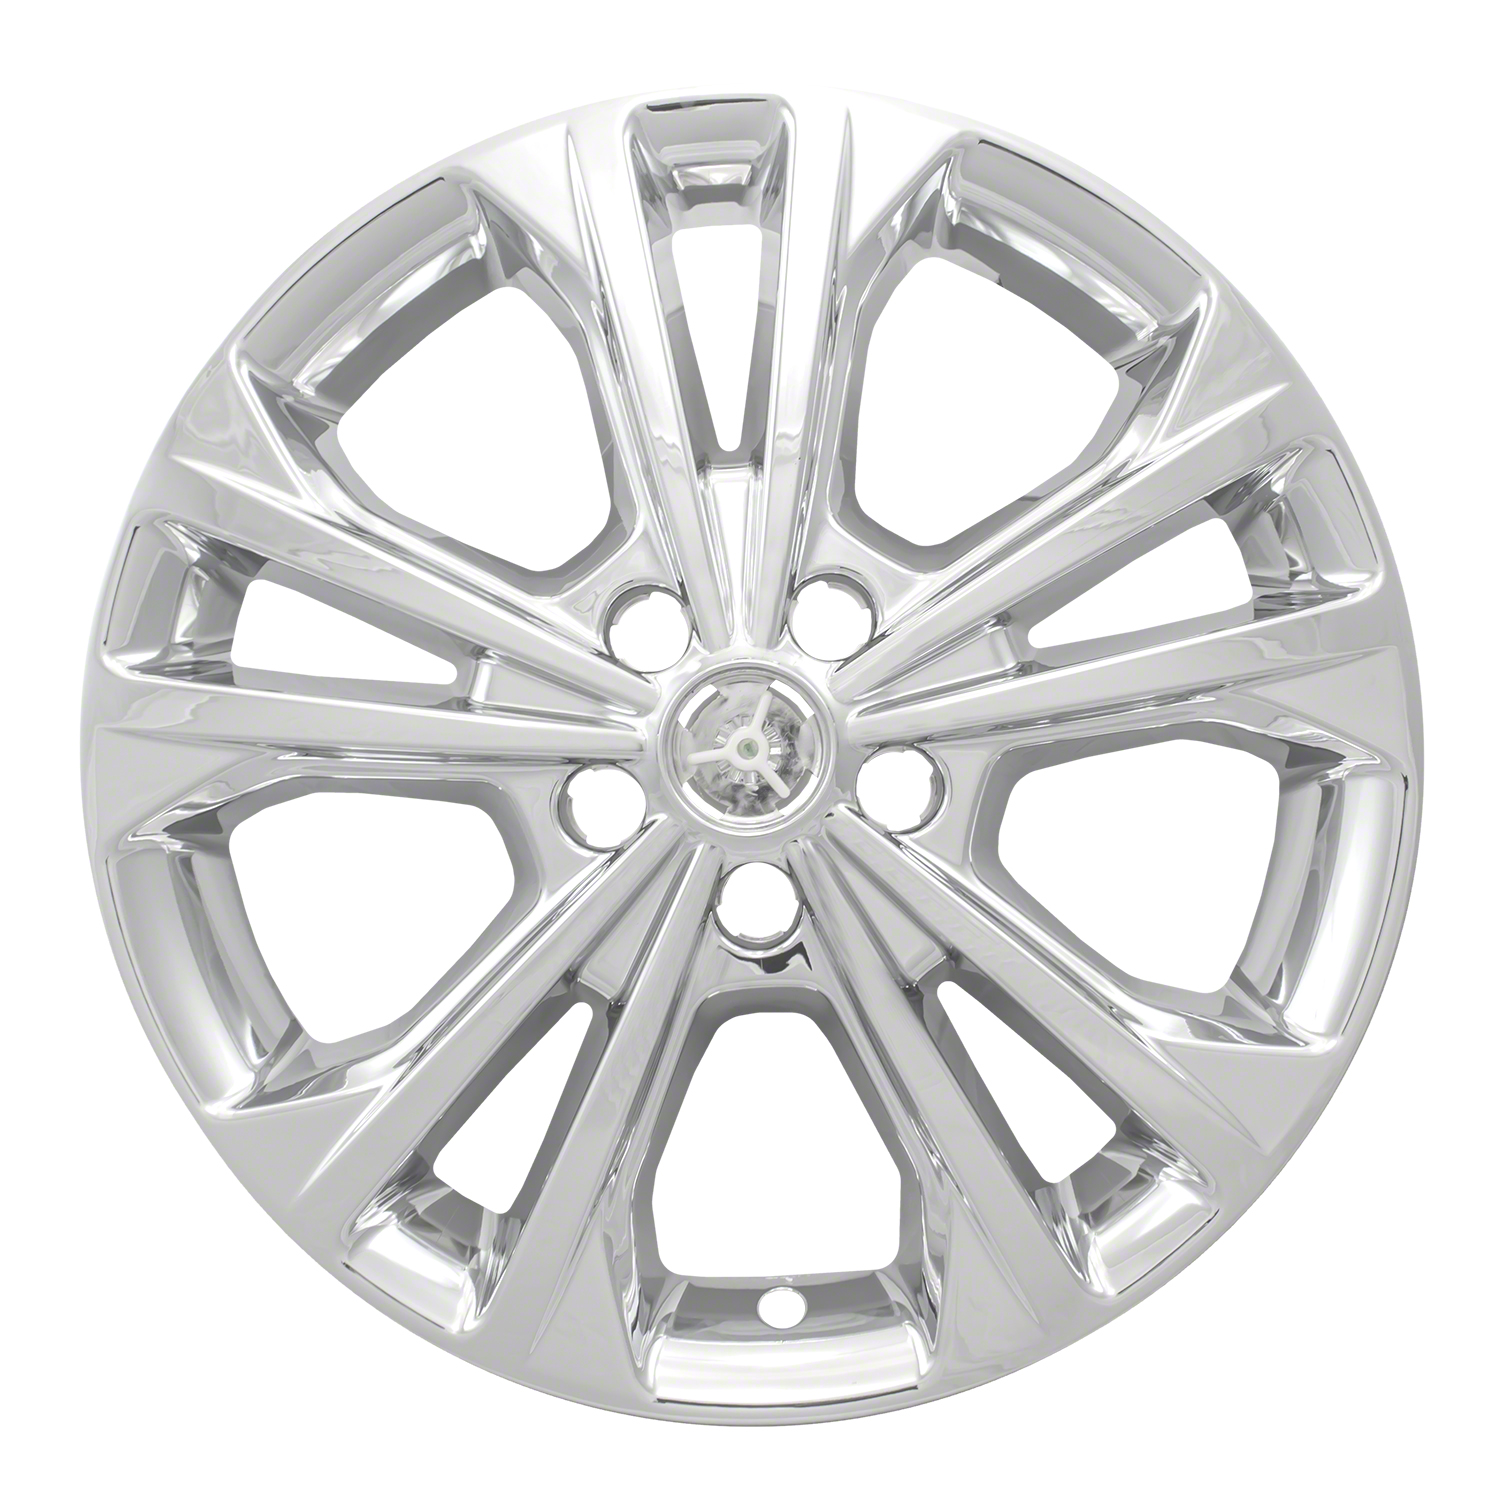 Coast To Coast International IWCIMP414X Wheel Cover IMPOSTOR (R) 17 Inch; 5 Double Spoke; Chrome Plated; Plastic; Set Of 4; Not Compatible With Steel Wheels - image 1 of 1